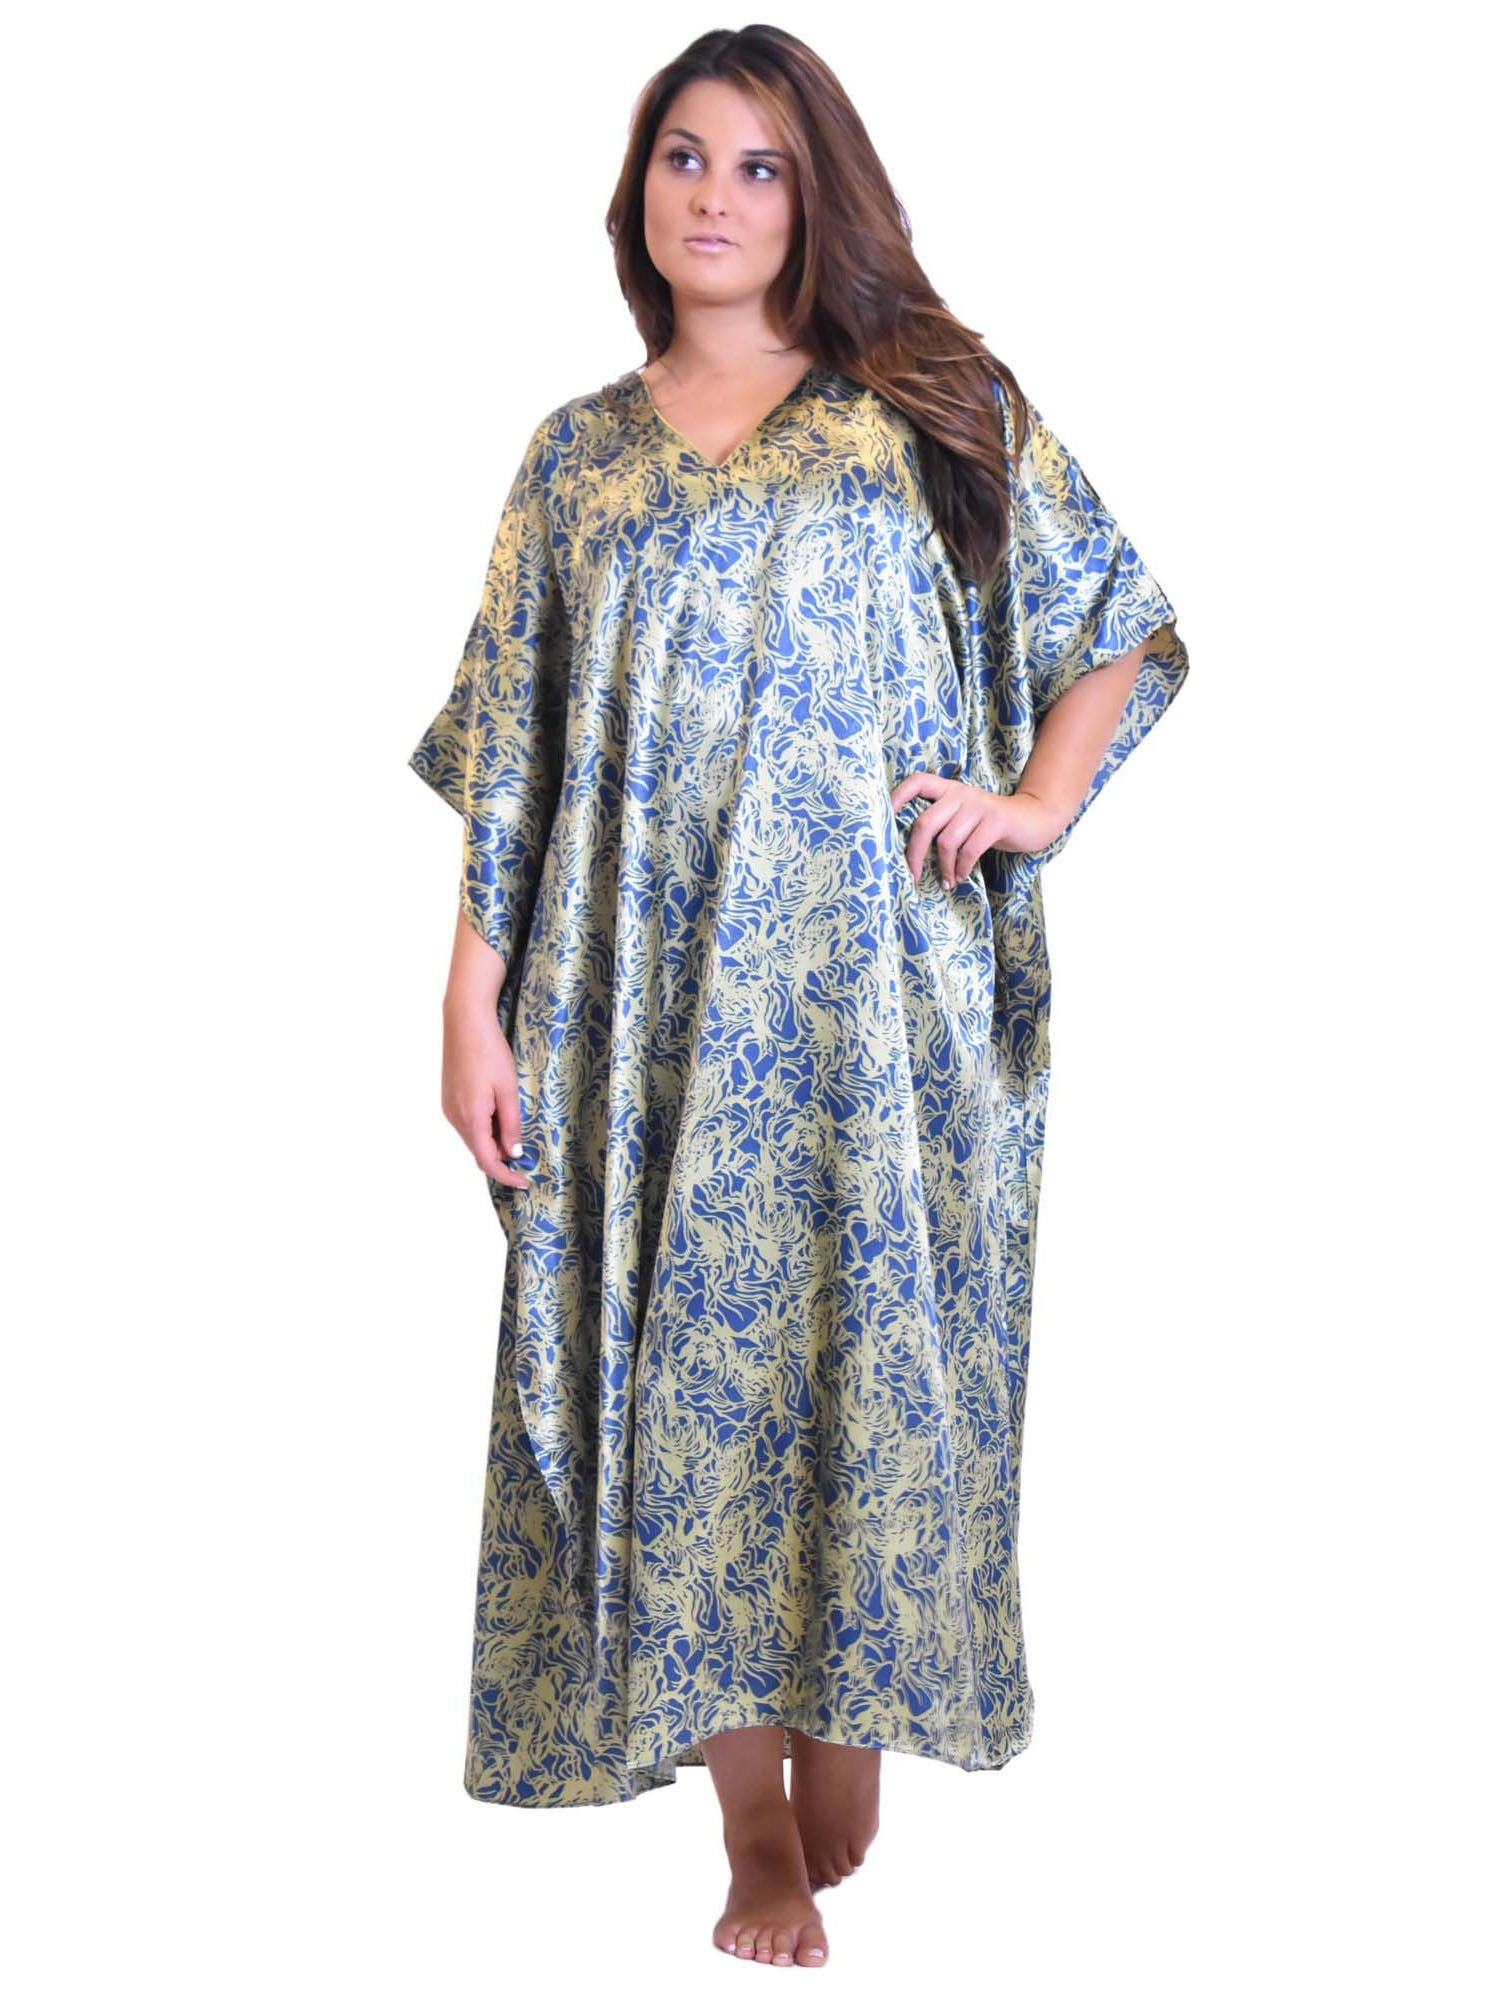 Women's Long Satin Caftan / Kaftan / Muumuu, Deep Seagrass Print